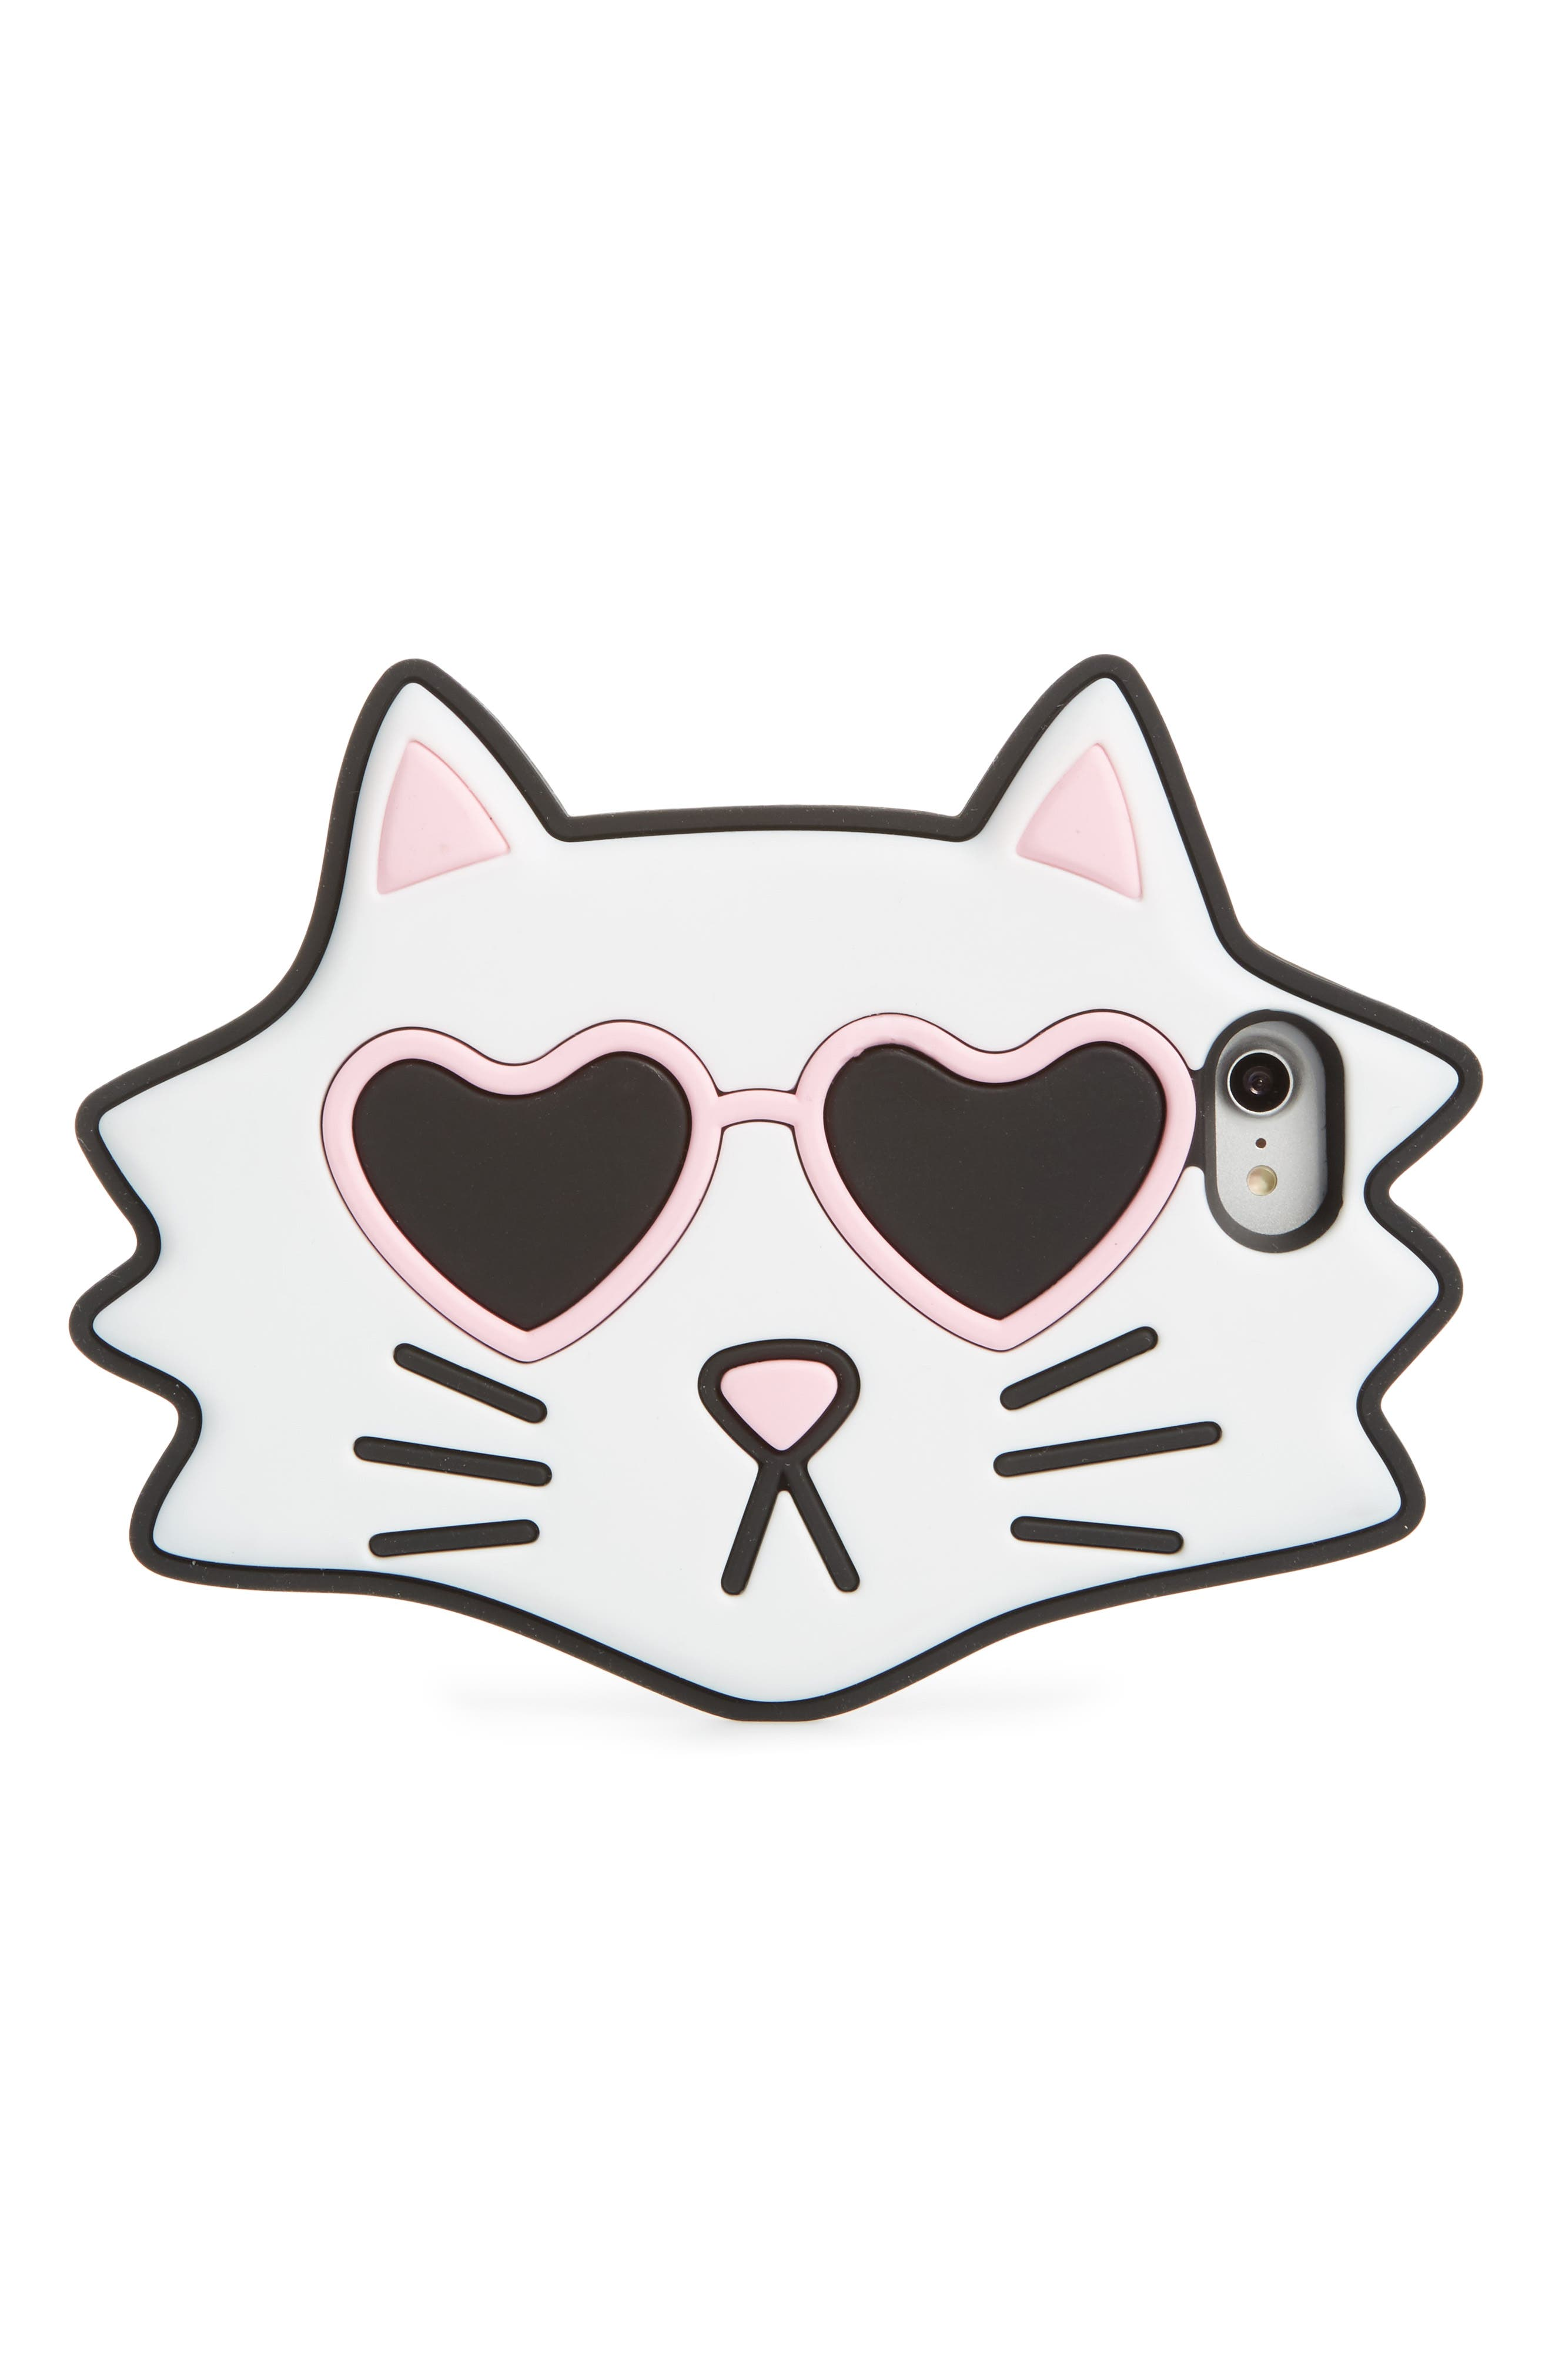 Oversize Cat iPhone 7/8 Case with Chain,                             Main thumbnail 1, color,                             White/ Black/ Pink